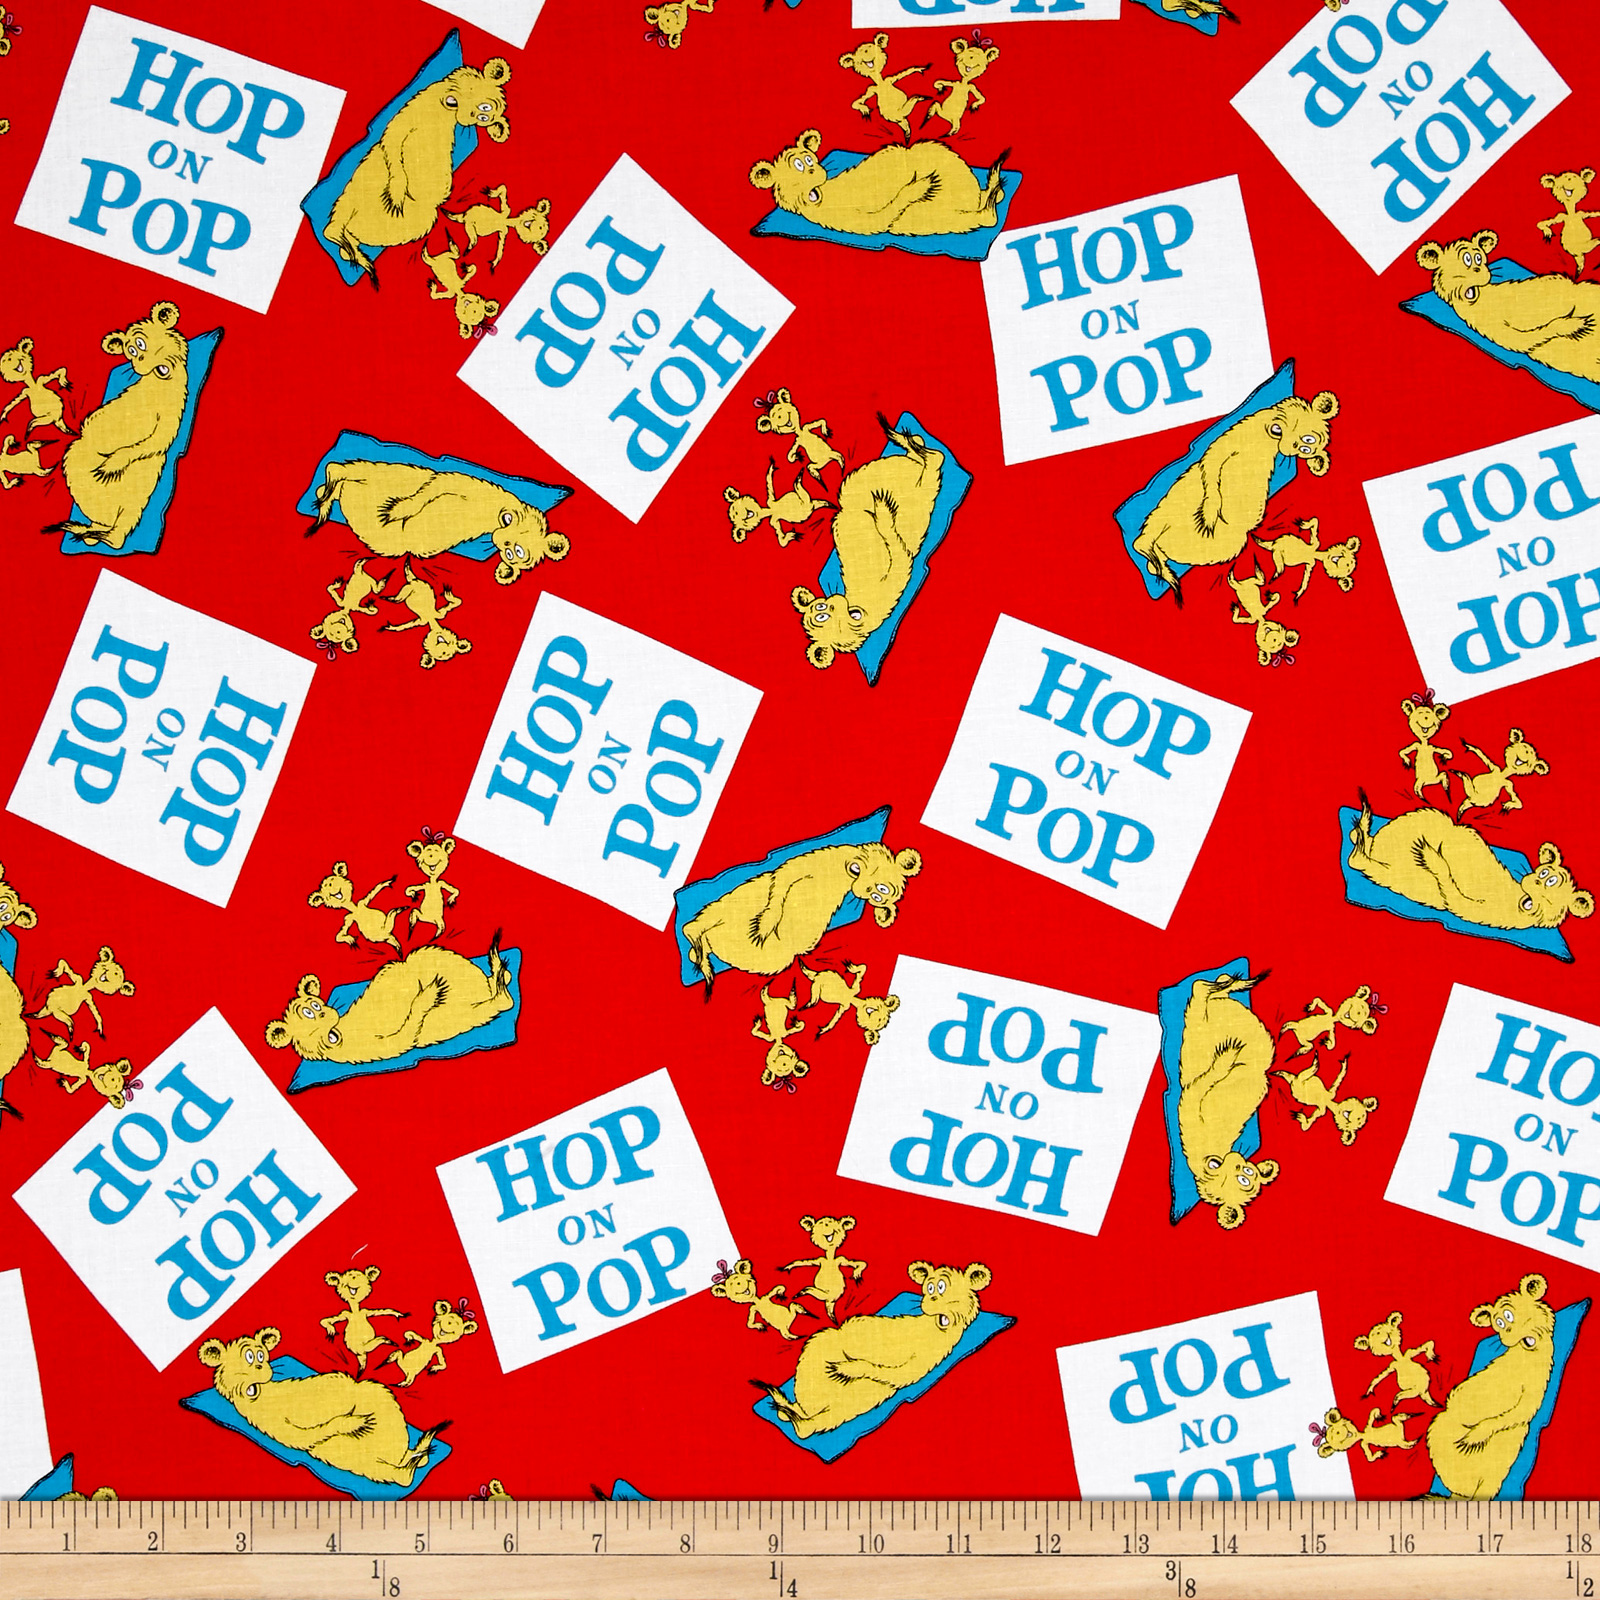 Dr Seuss Hop On Pop Words Red Fabric